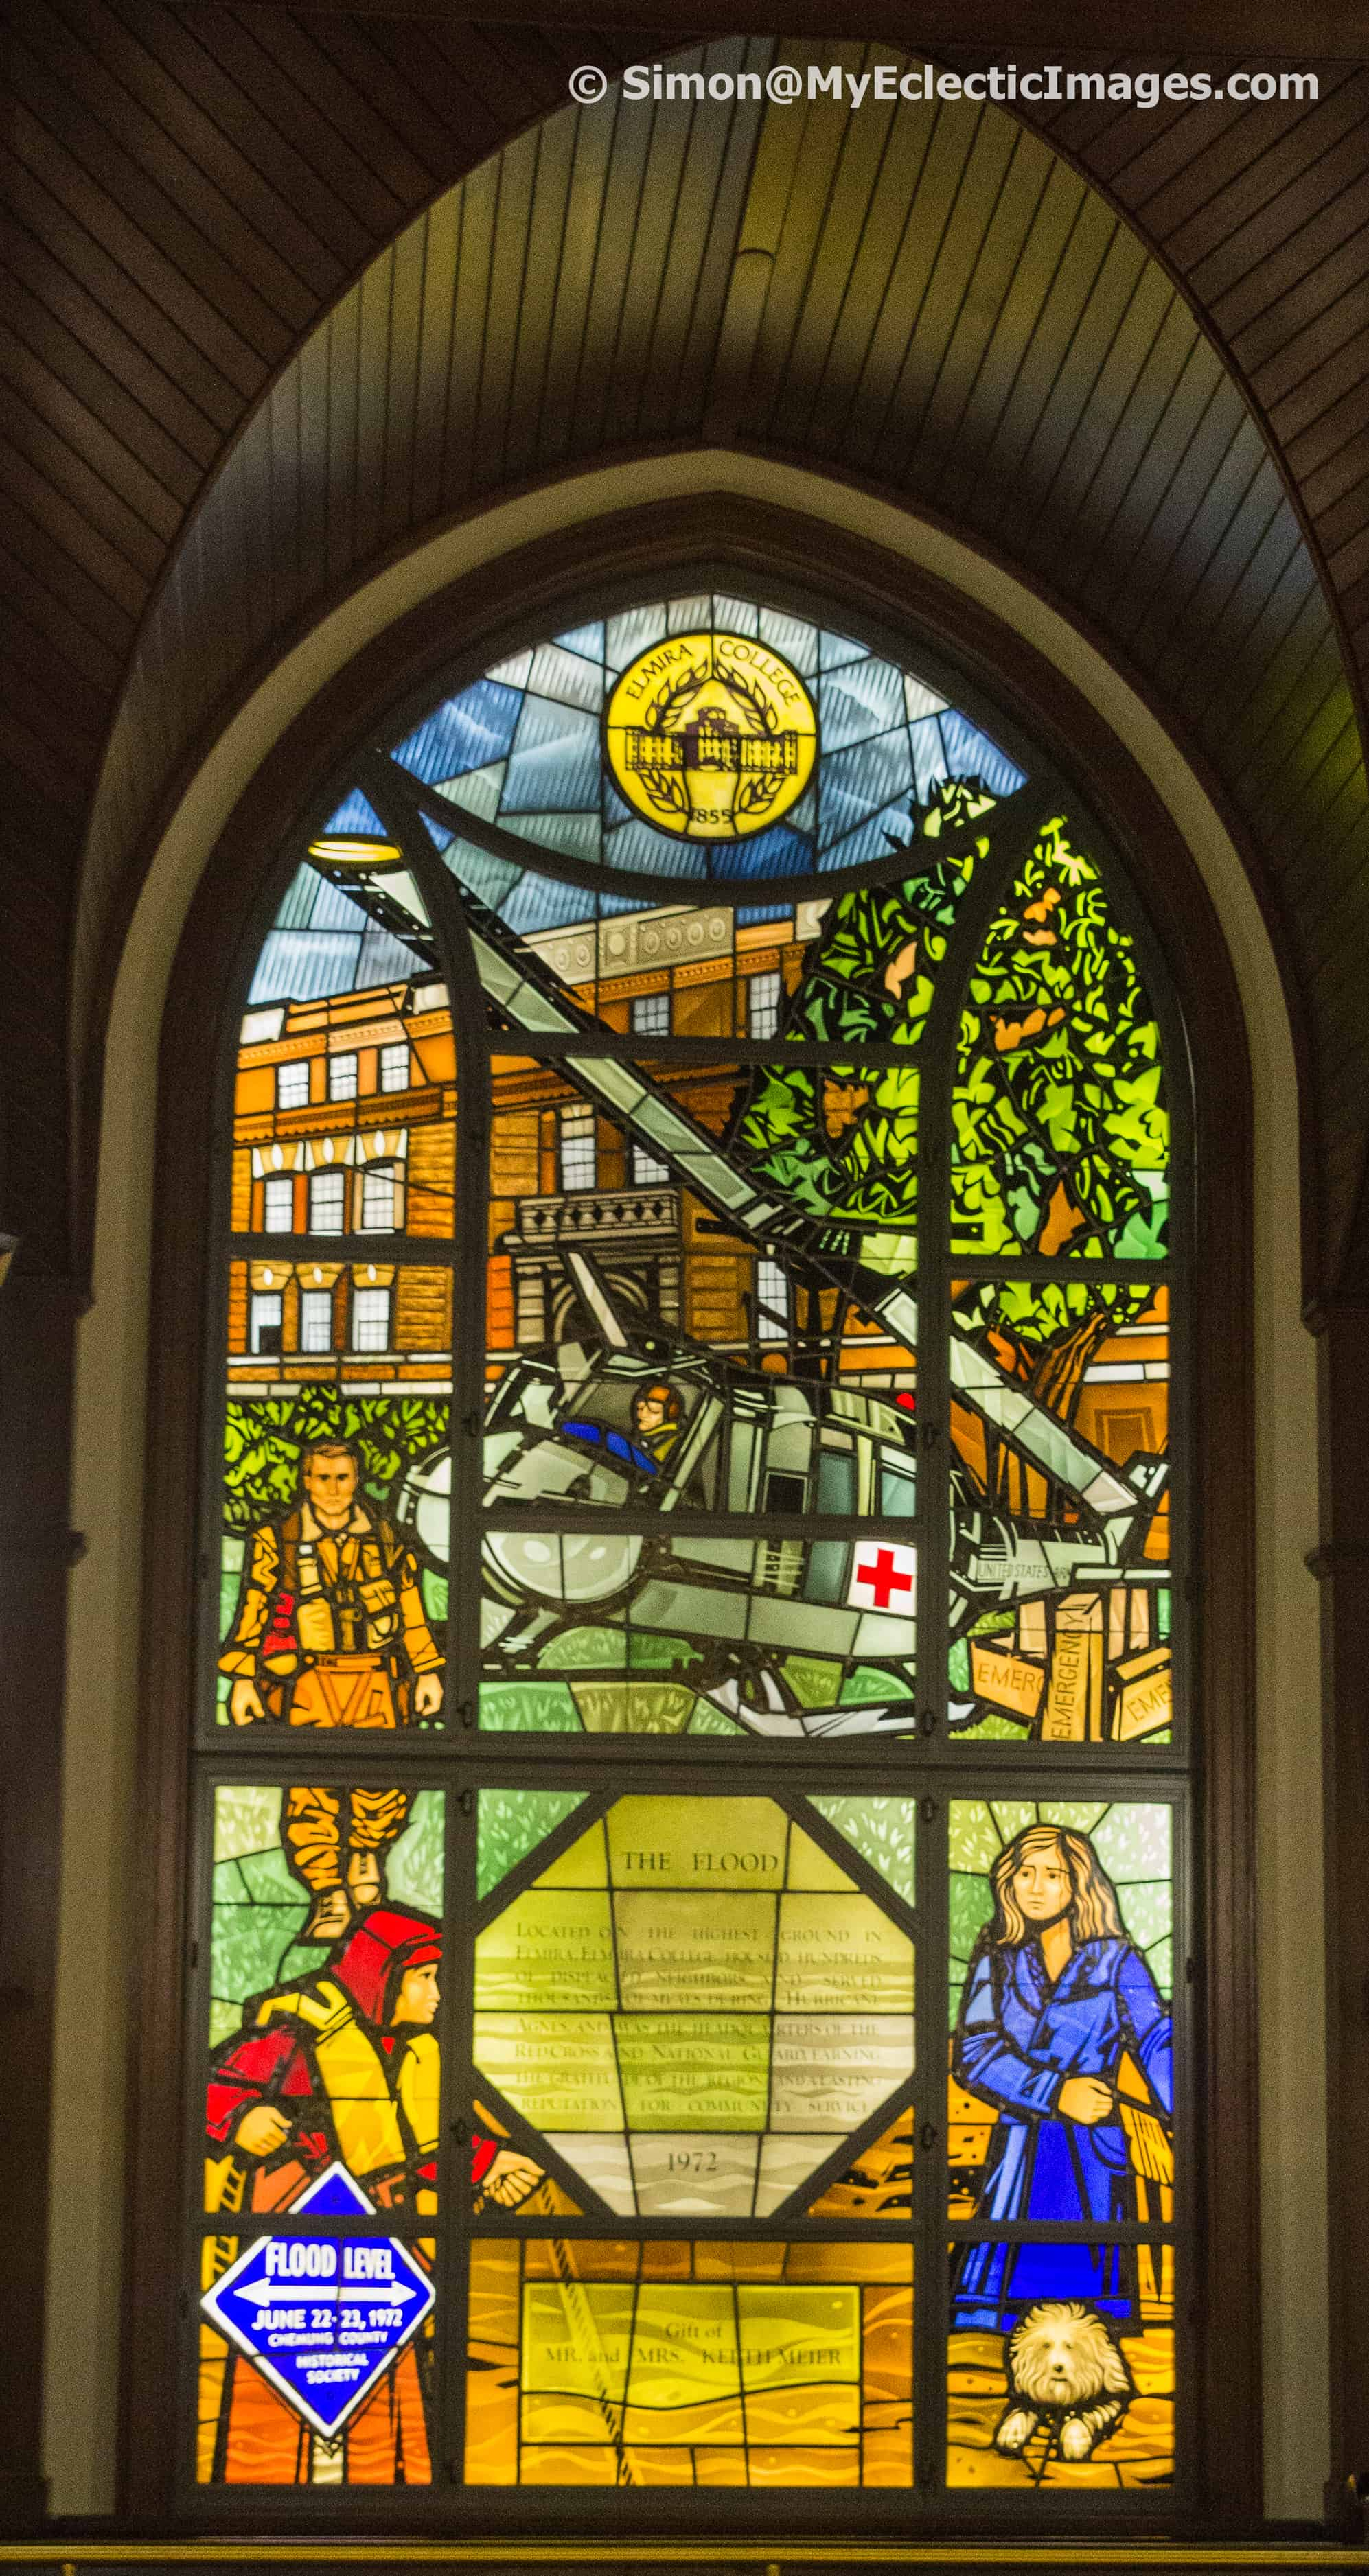 Stained glass depicting the flood of 1972 in Elmira